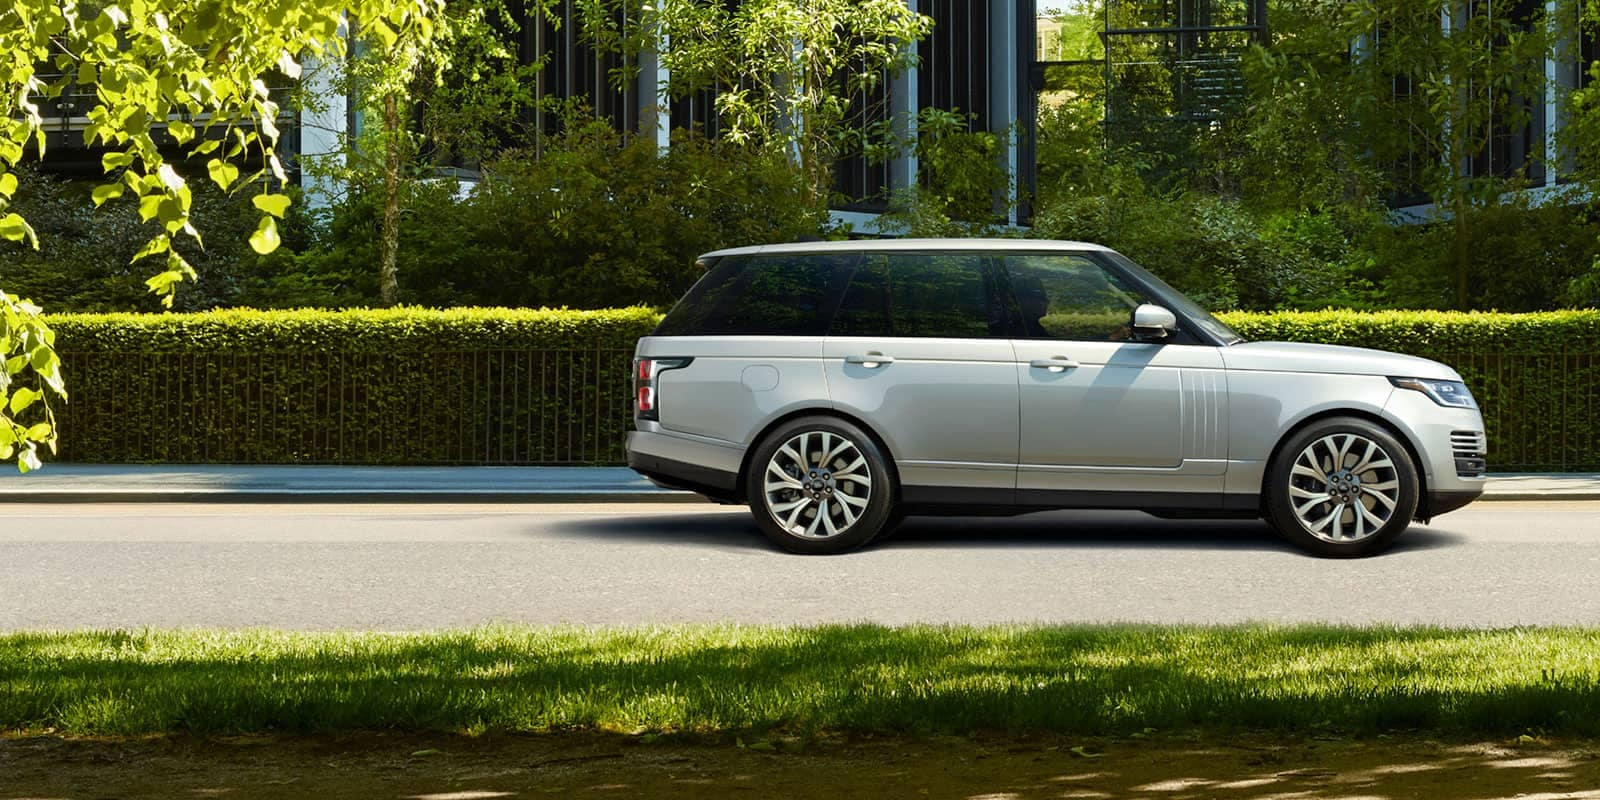 sideview of a range rover